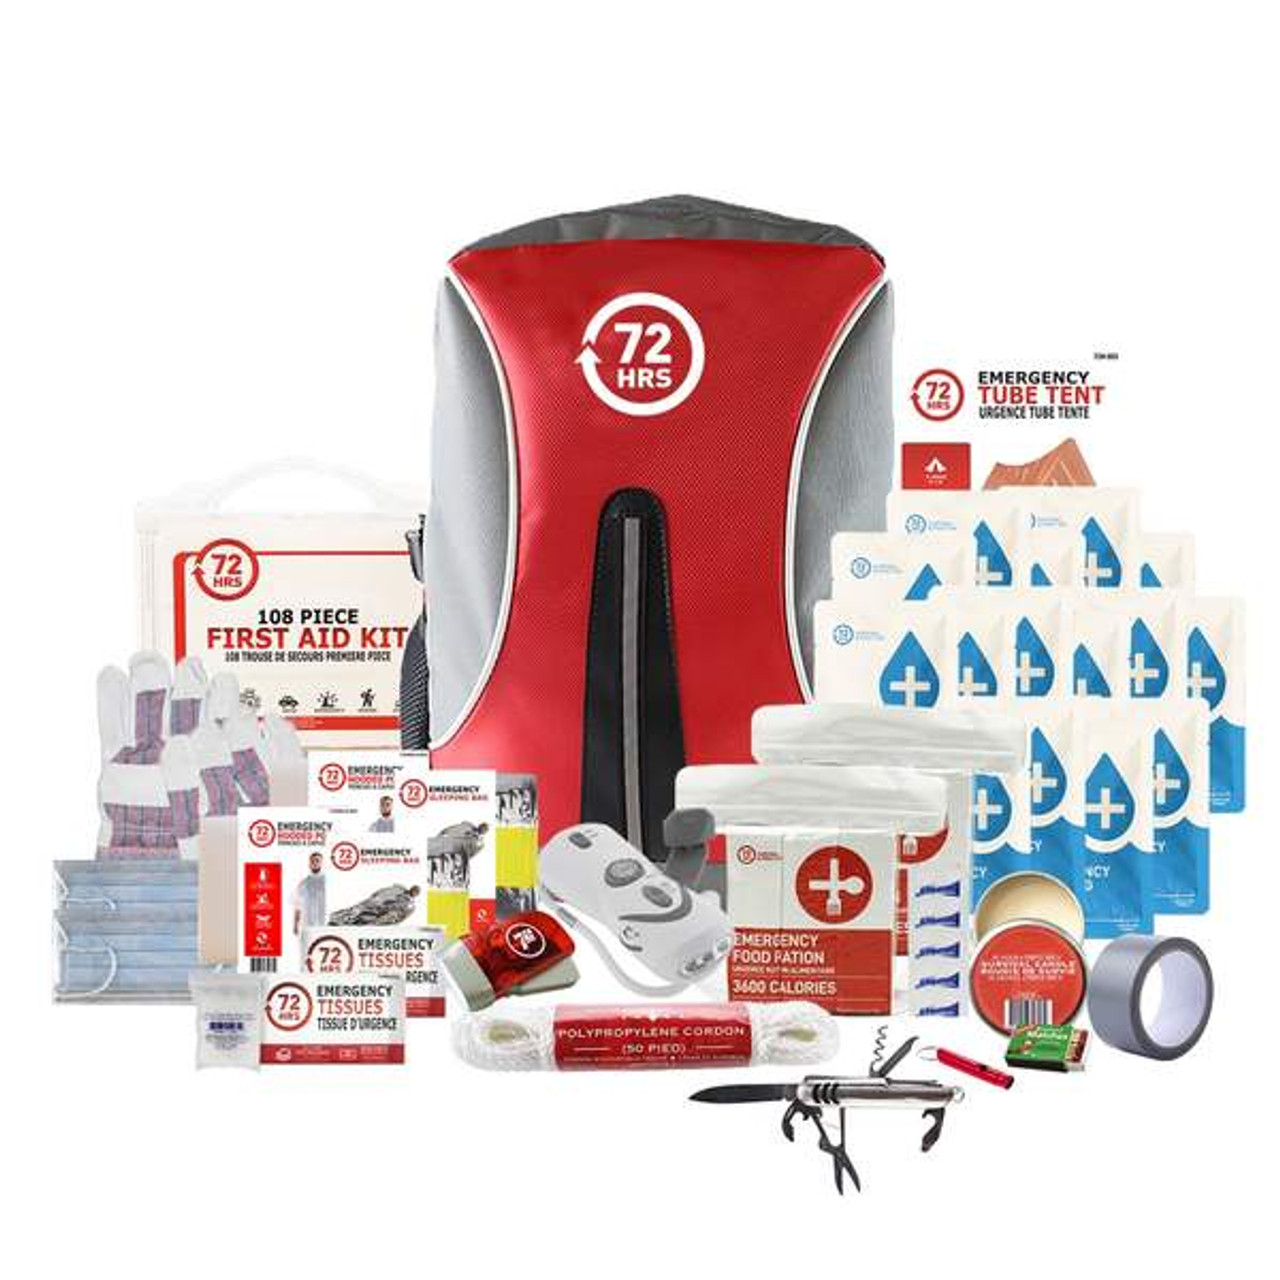 2 Person 72HRS Deluxe Backpack - Emergency Survival Kit